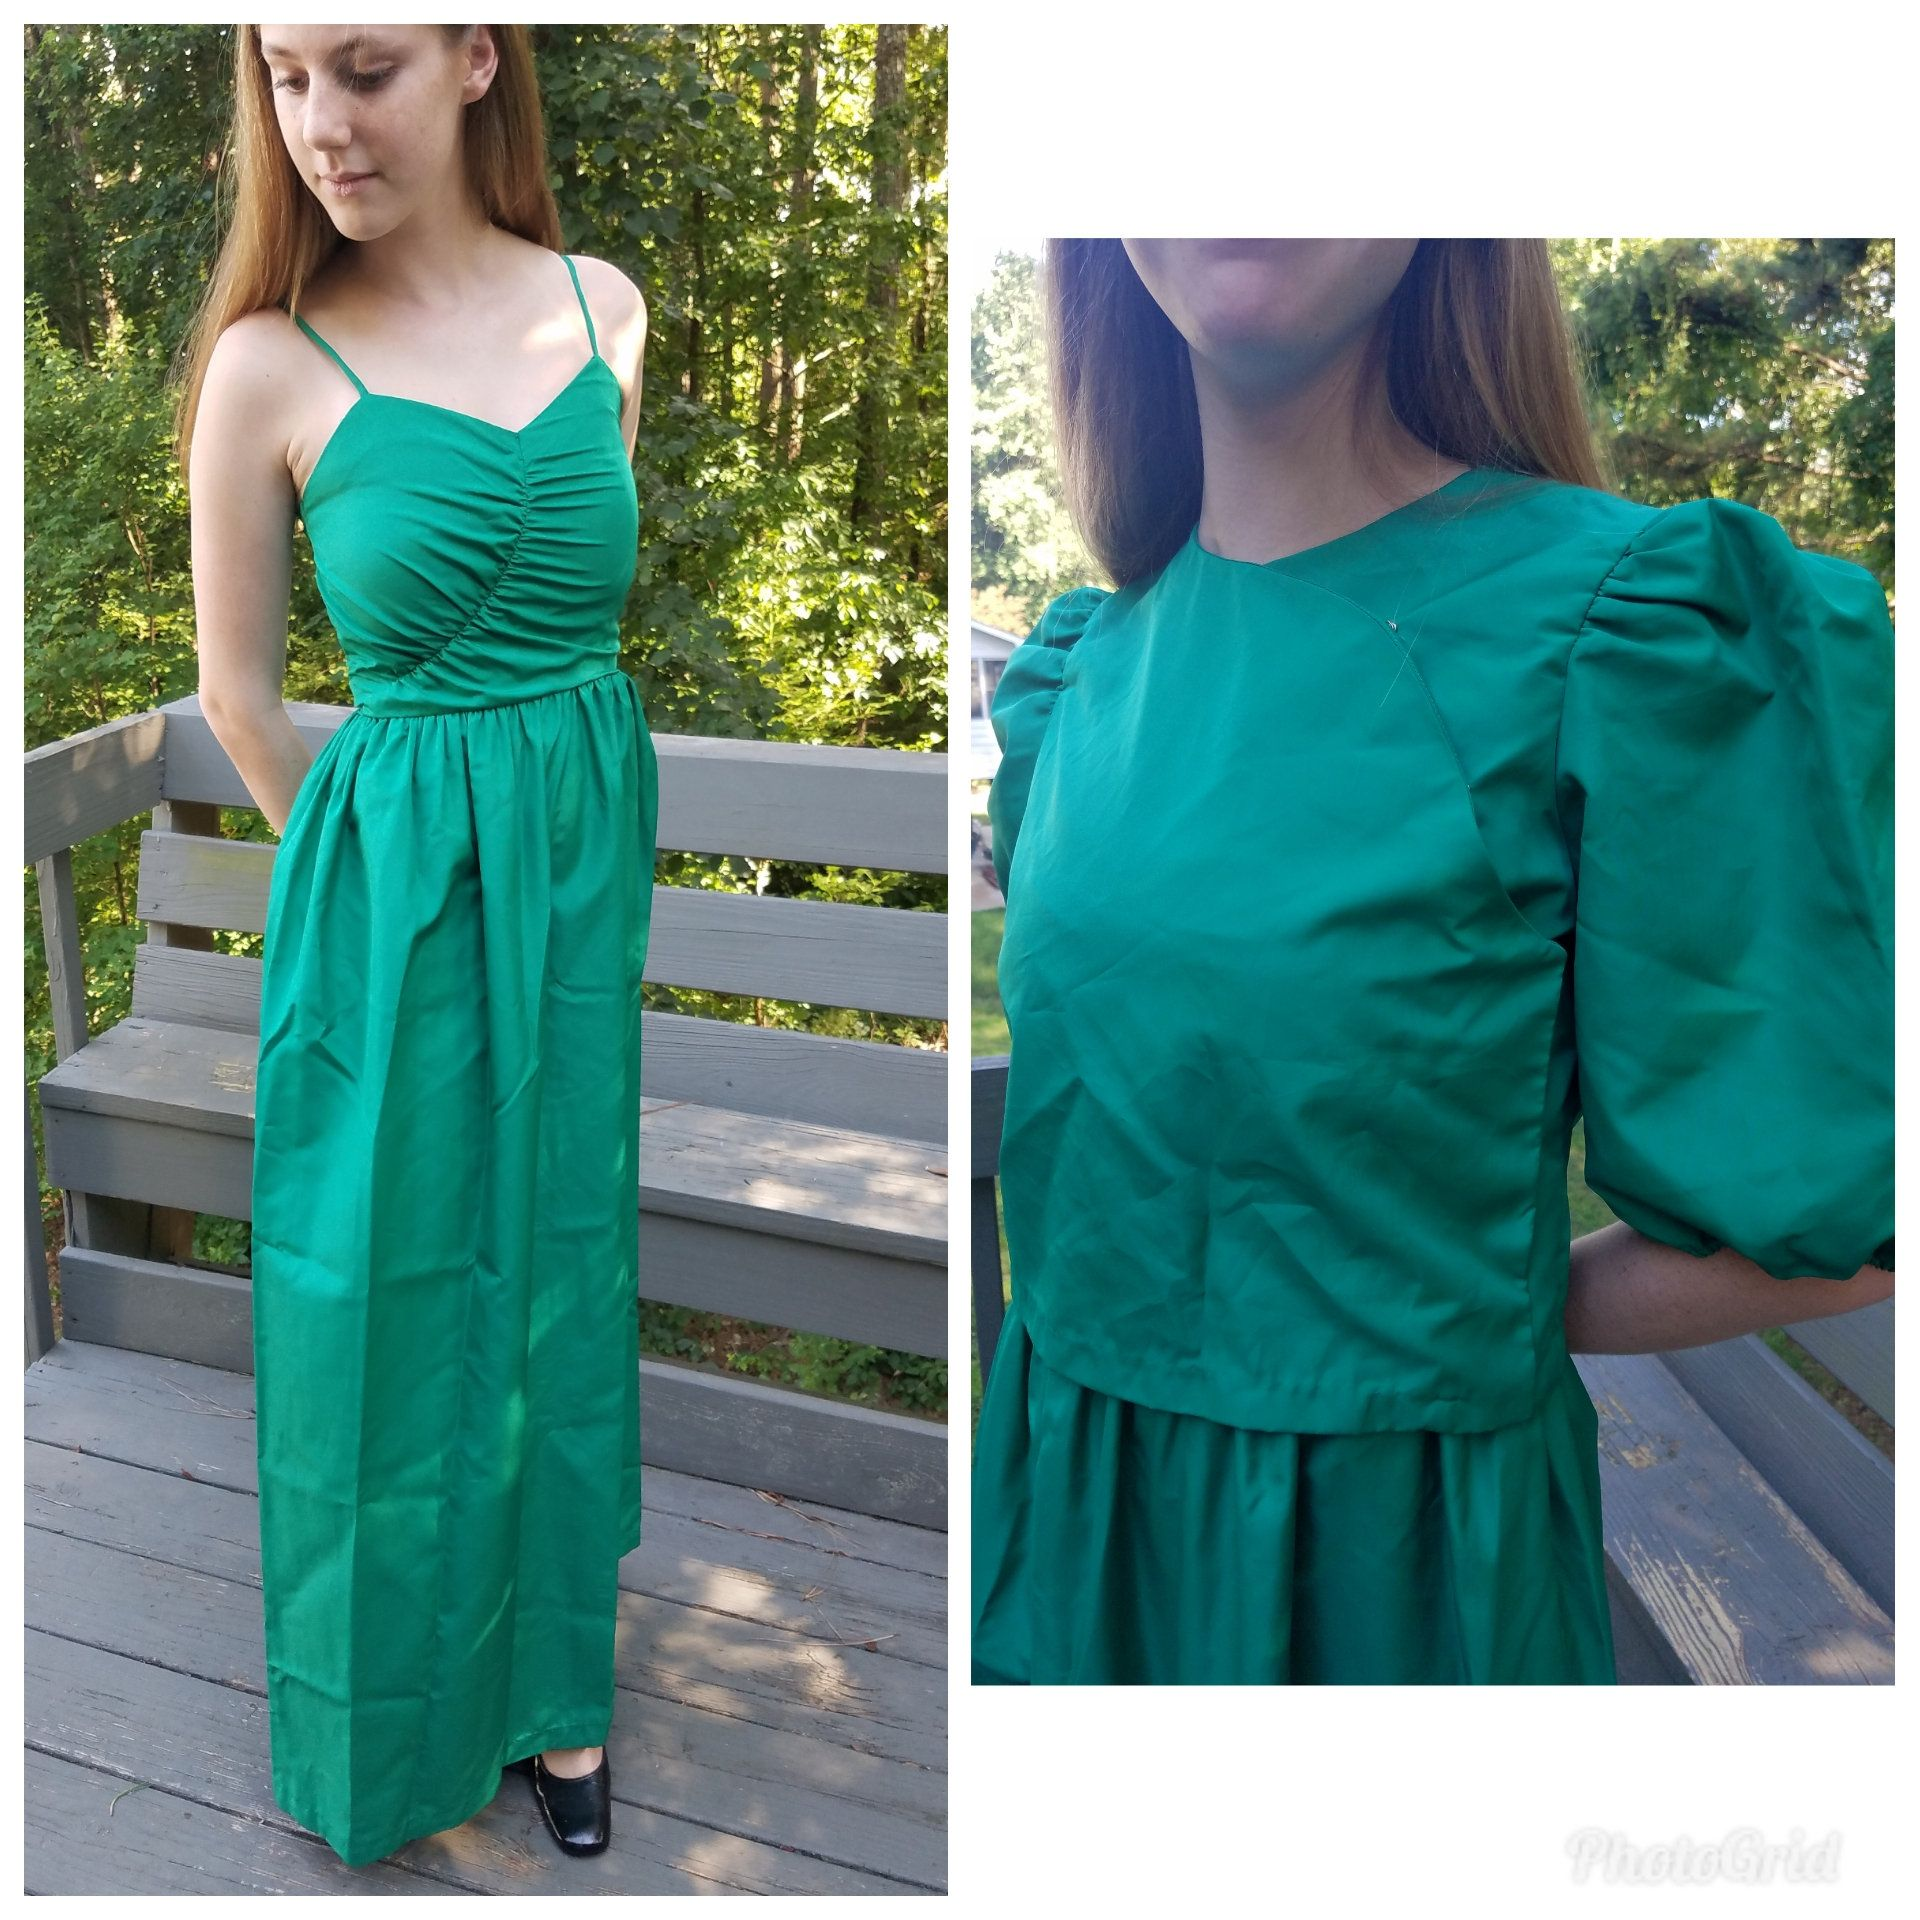 70s Formal Dress Vintage Dessy Creations Green Holiday Outfit By Libertymarensvintage On Vintage Homecoming Dresses Prom Dresses Vintage Vintage Formal Dresses [ 1920 x 1920 Pixel ]